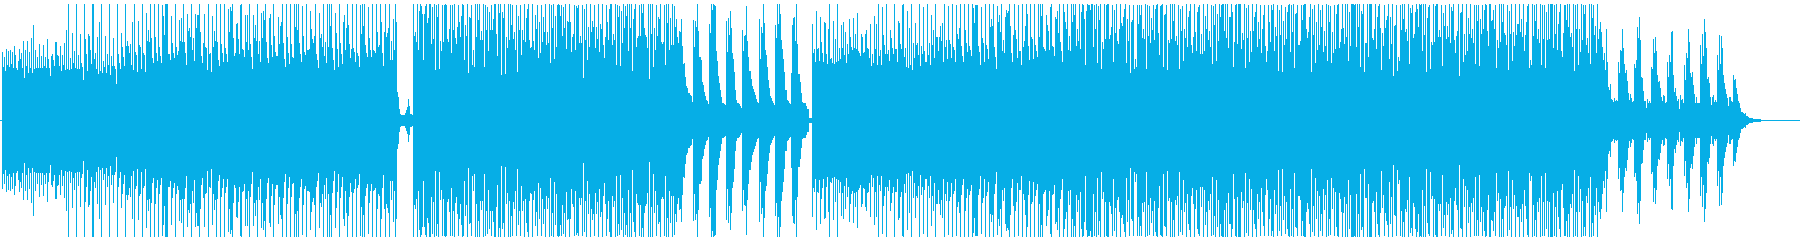 PV-Refreshing-Bright-POP-Family-Ship's reproduced waveform